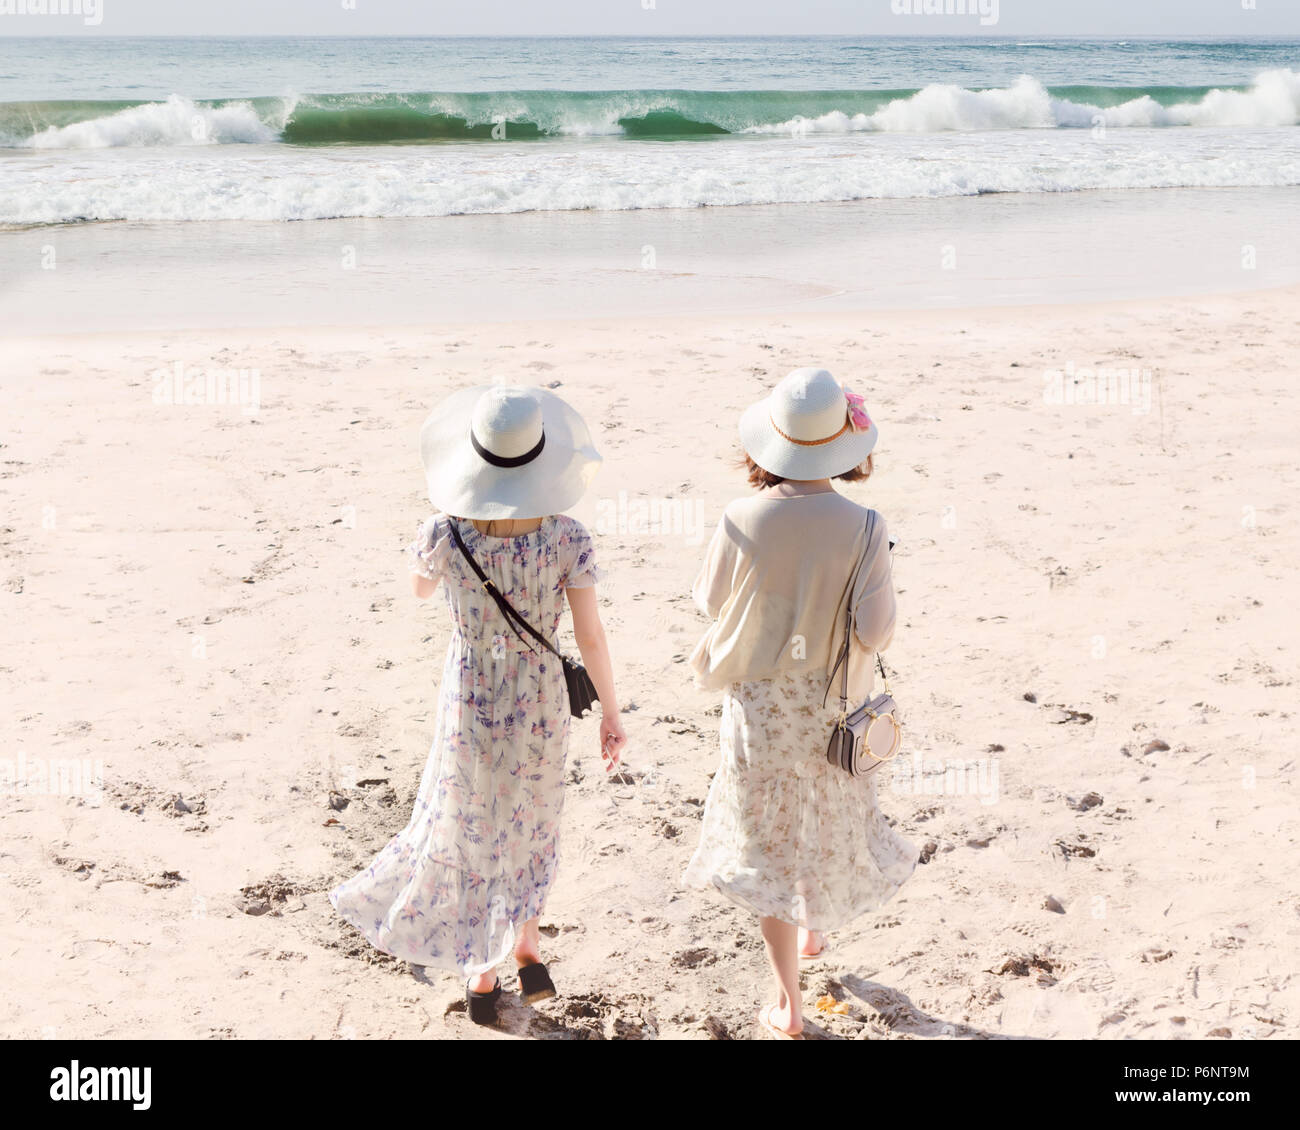 Rear view of two young women in long dresses and hats walking along sandy beach meet sea water. Bali island. Concept of wonderful holiday, escape - Stock Image